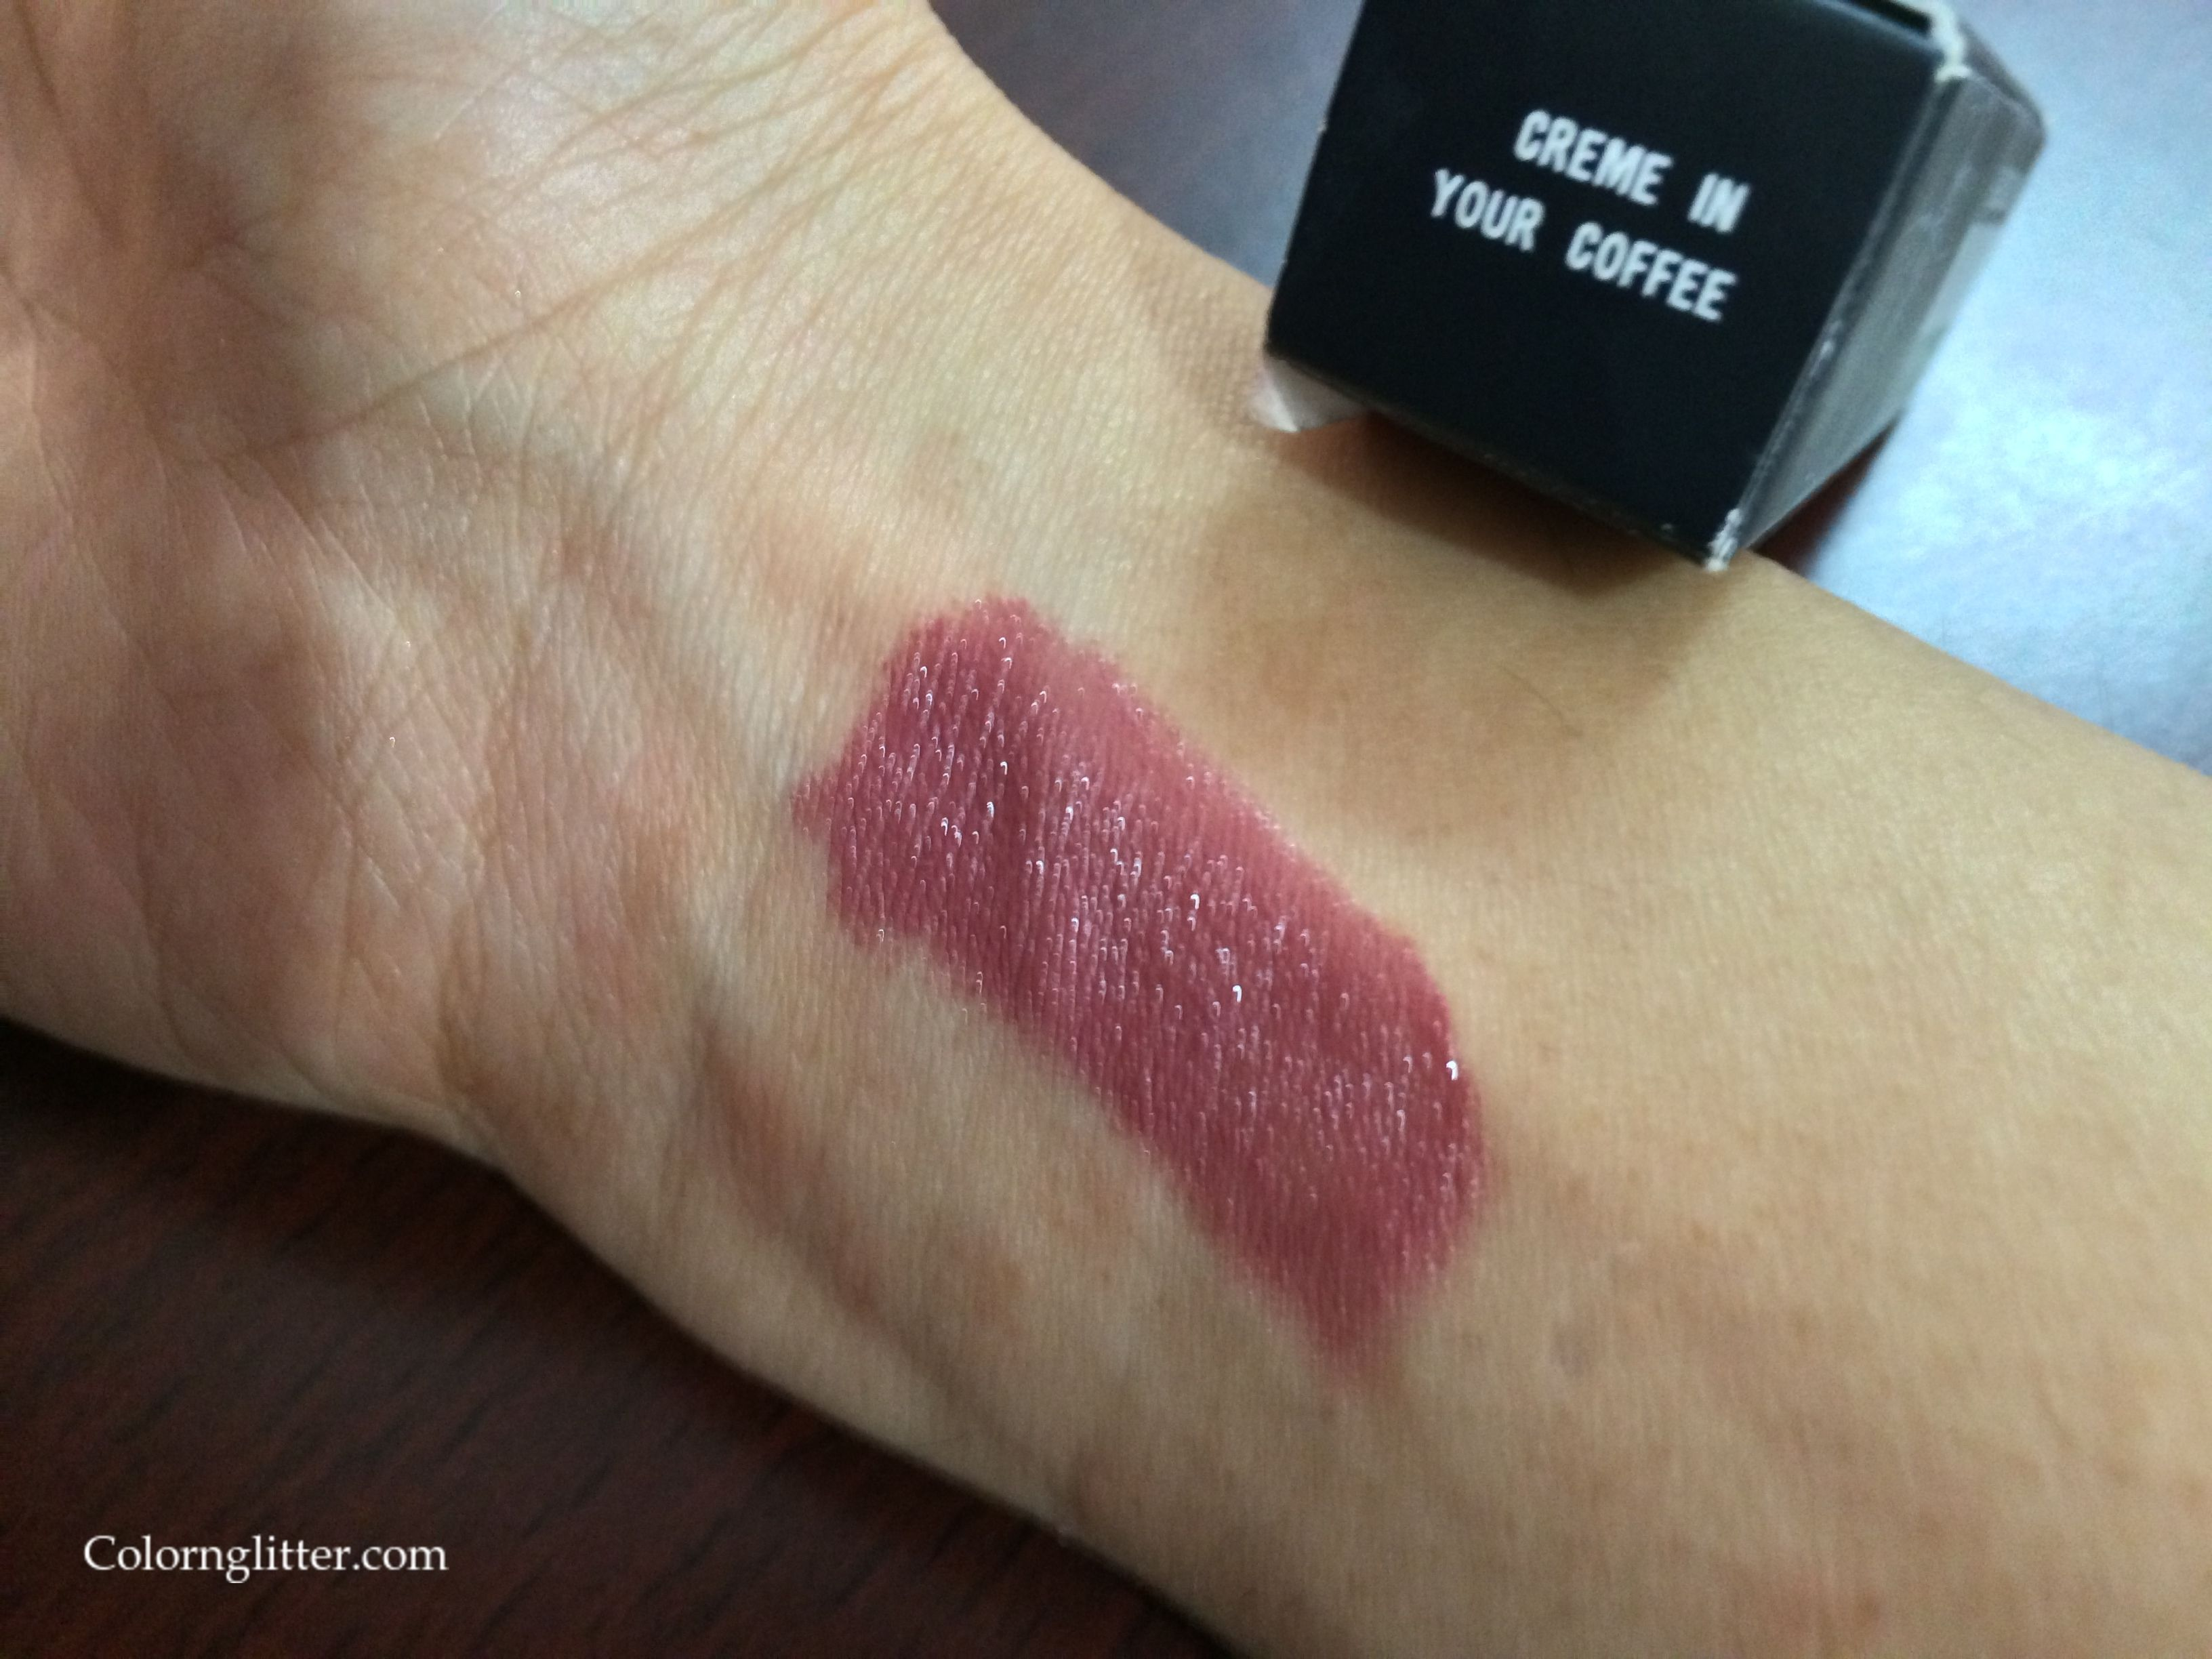 MAC creme in your coffee | MAKEUP I LOVE | Pinterest ...